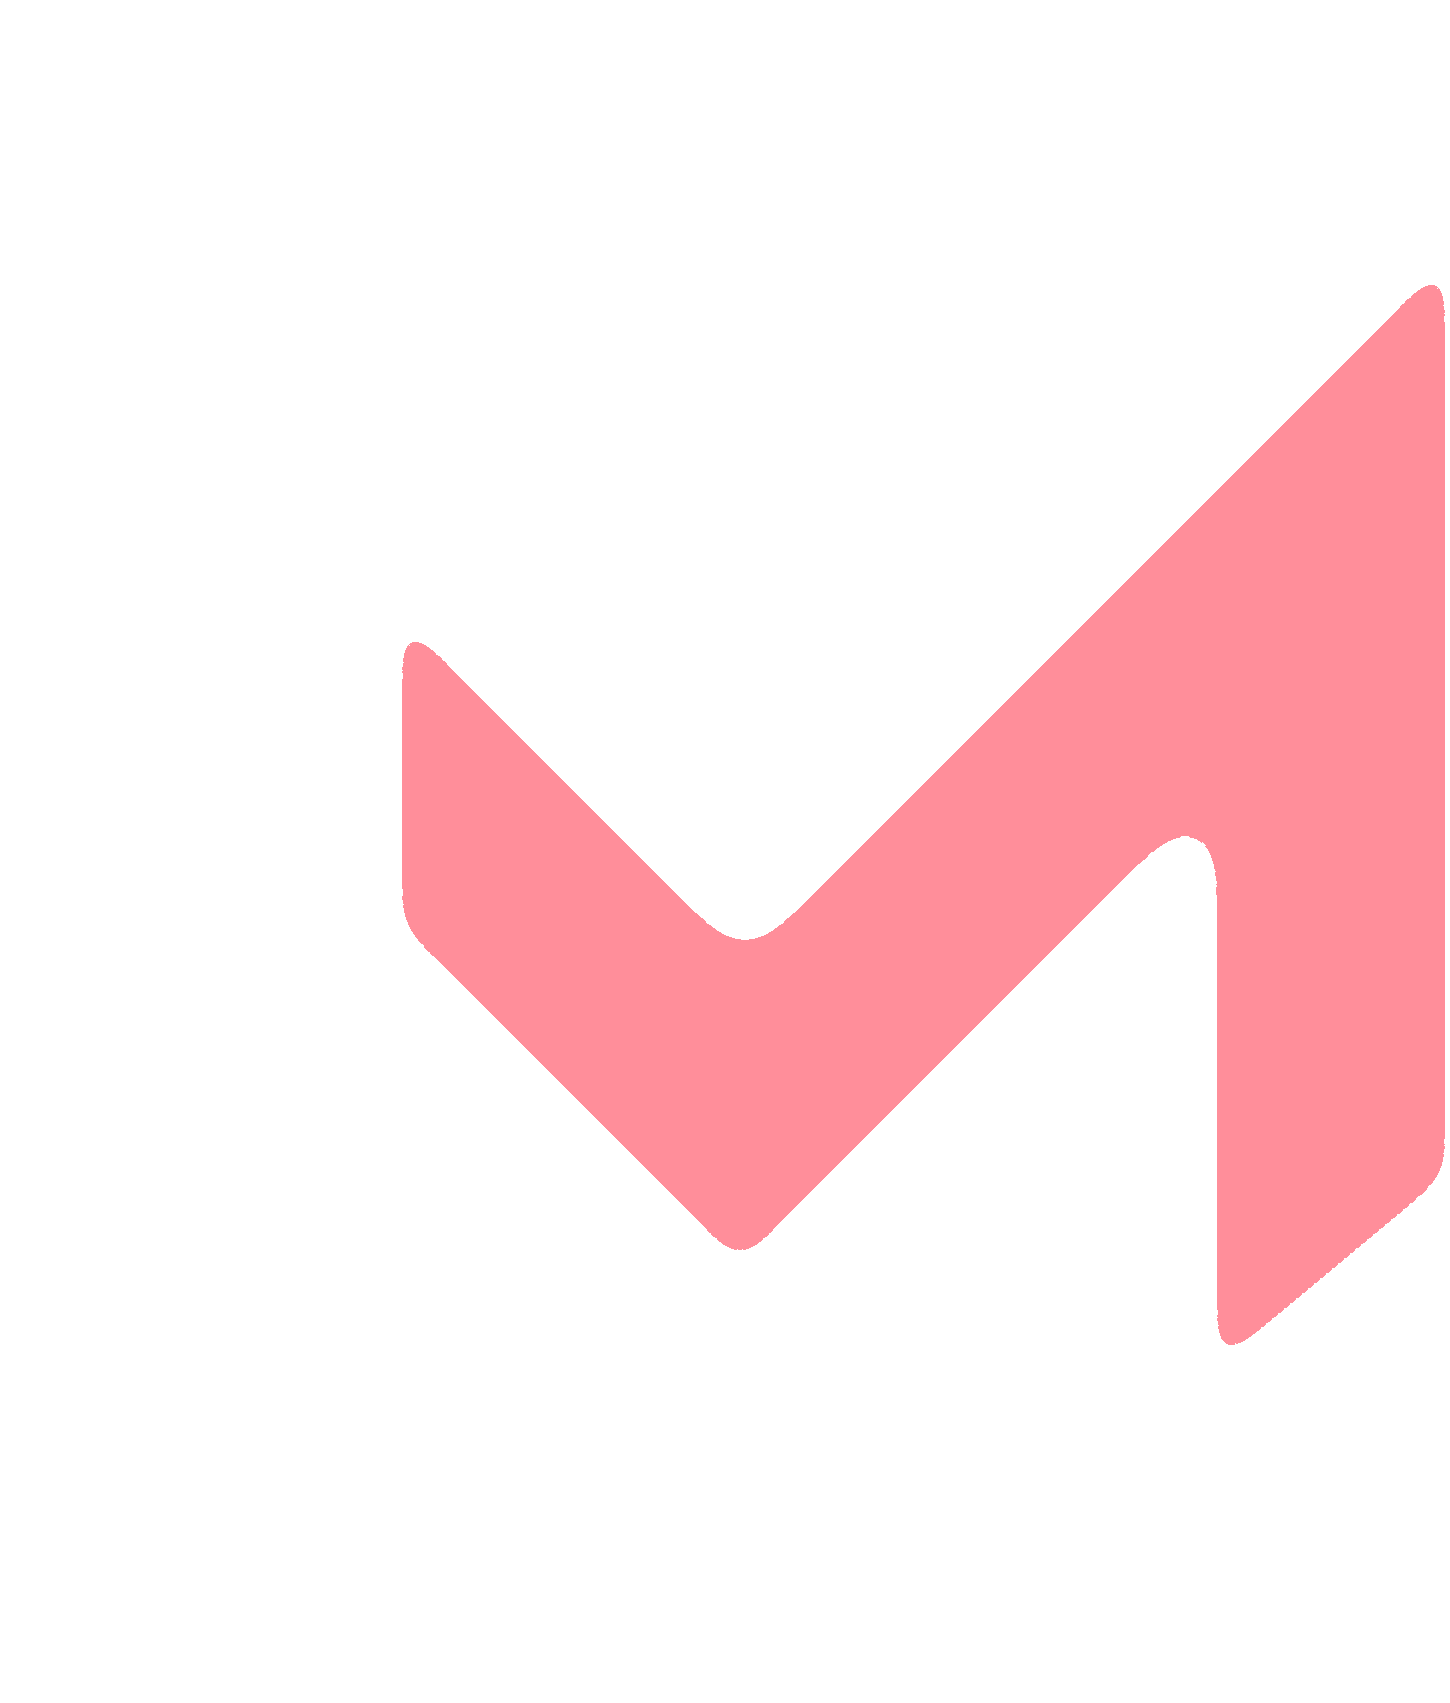 Monaghan McGuire Creative Collective